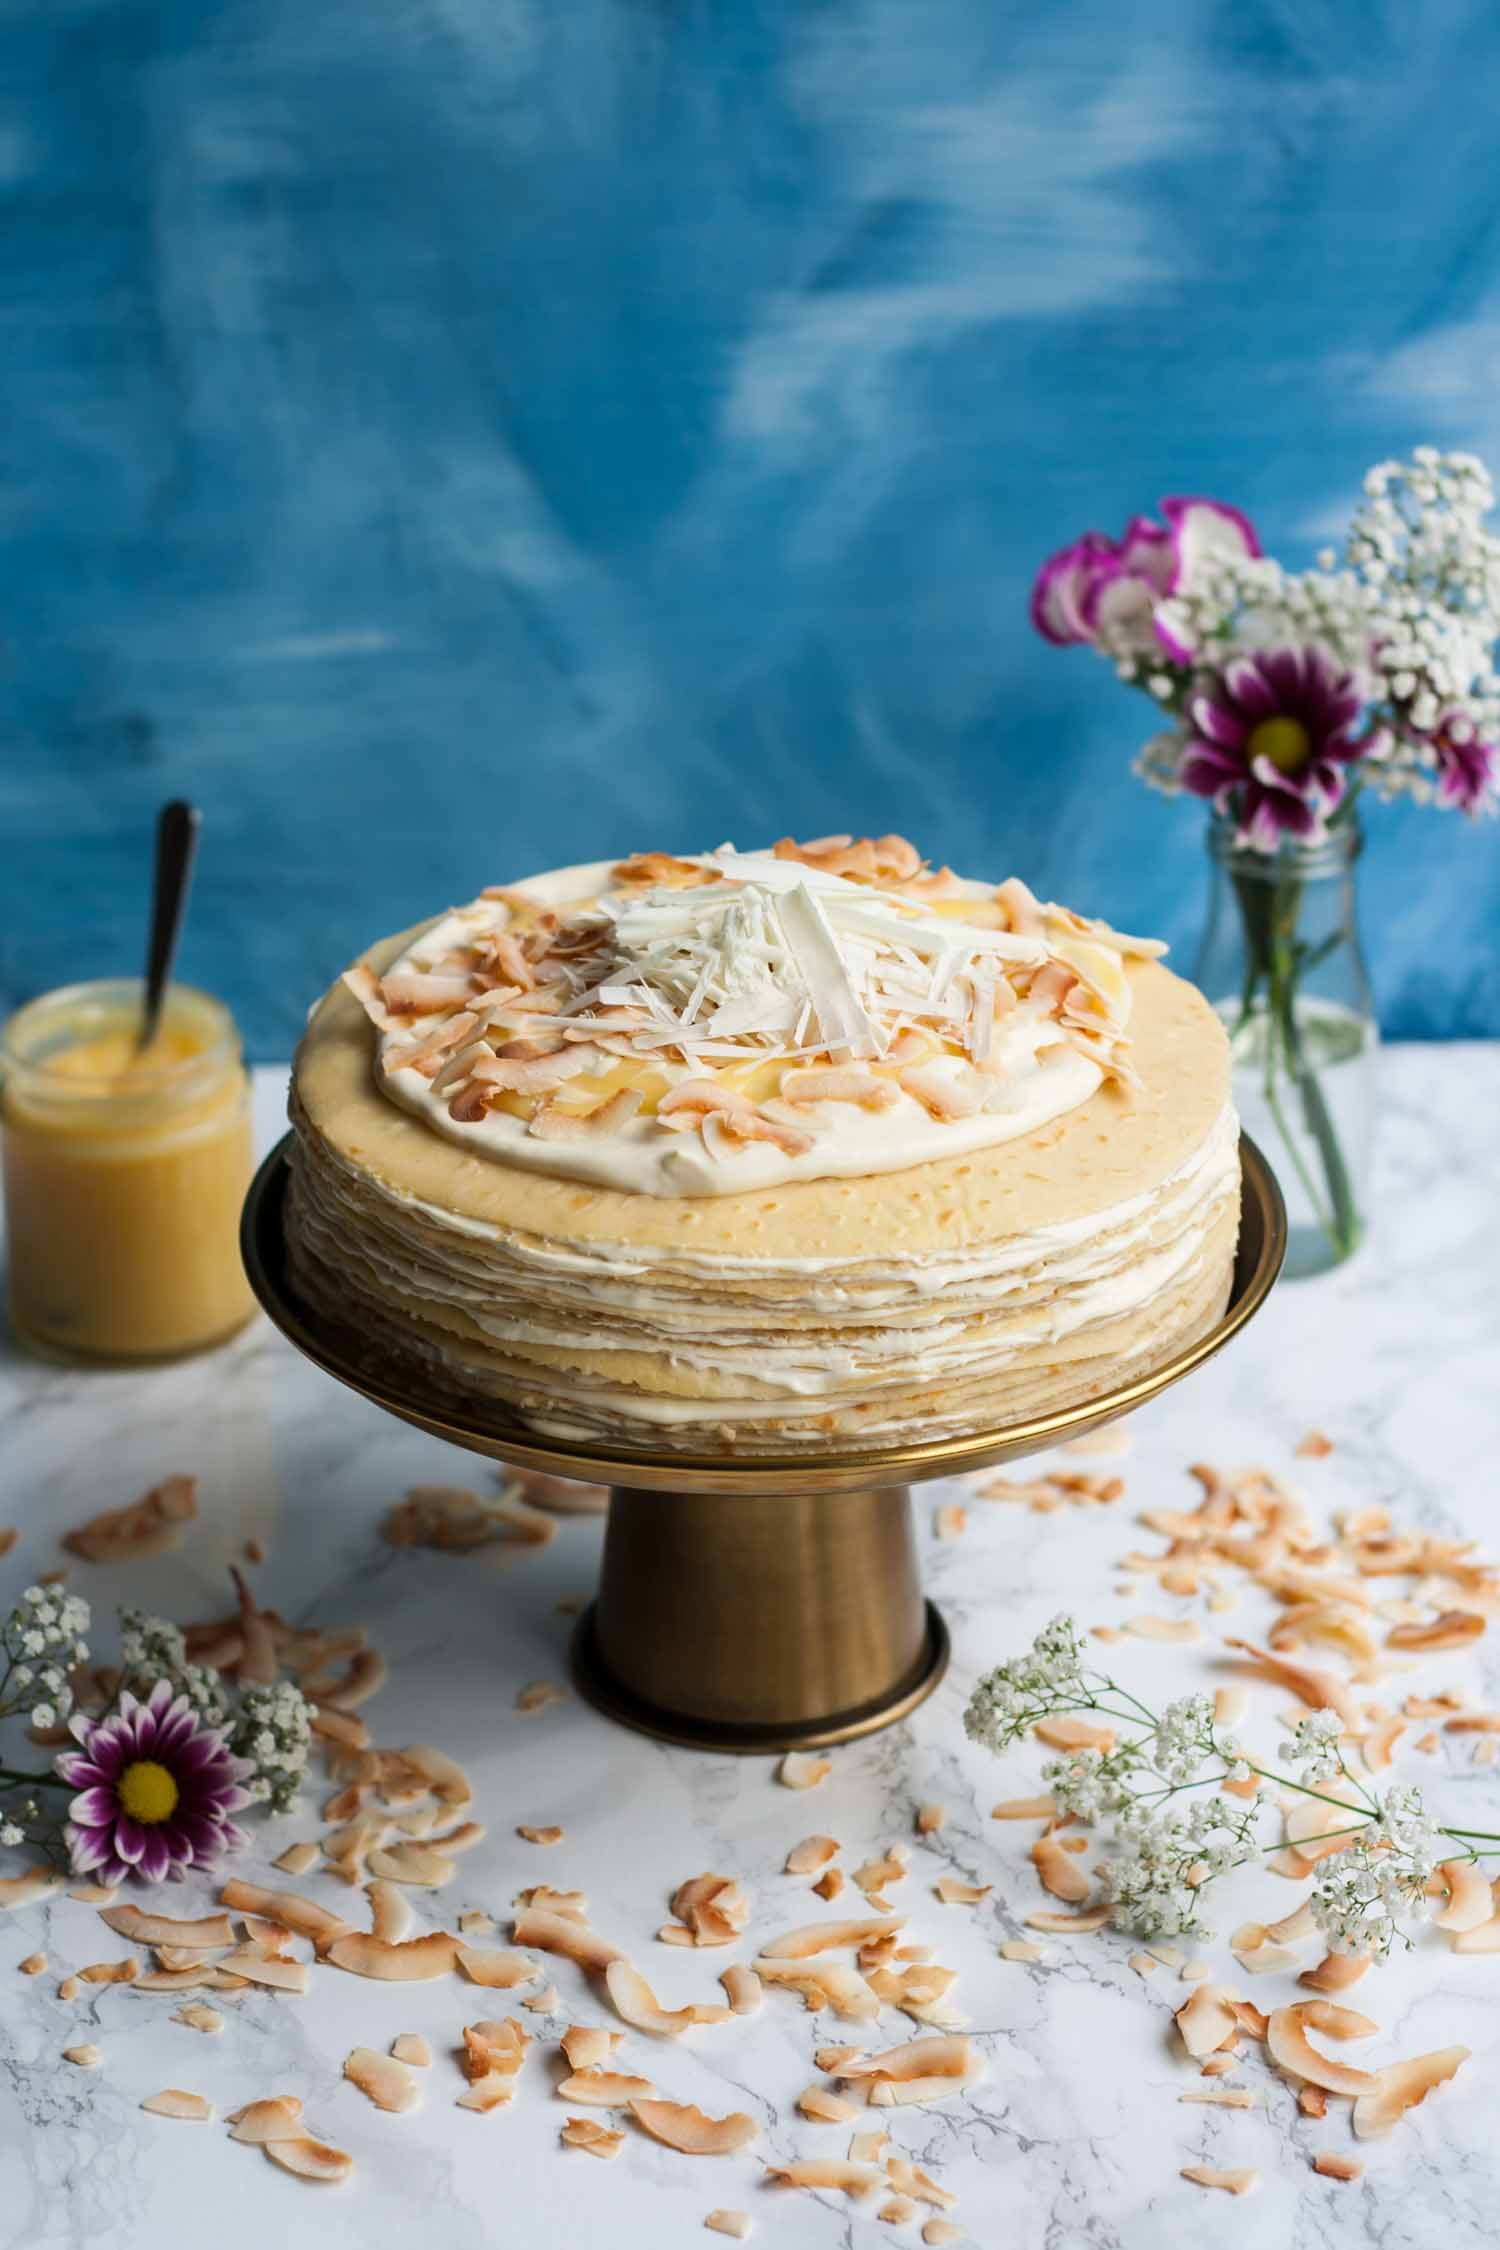 White Chocolate Lemon Curd Crepe Cake - why not try making this gorgeous mille crepe cake as a perfect showstopper centrepiece for Pancake Day or any celebration you can think of! | eatloveeats.com